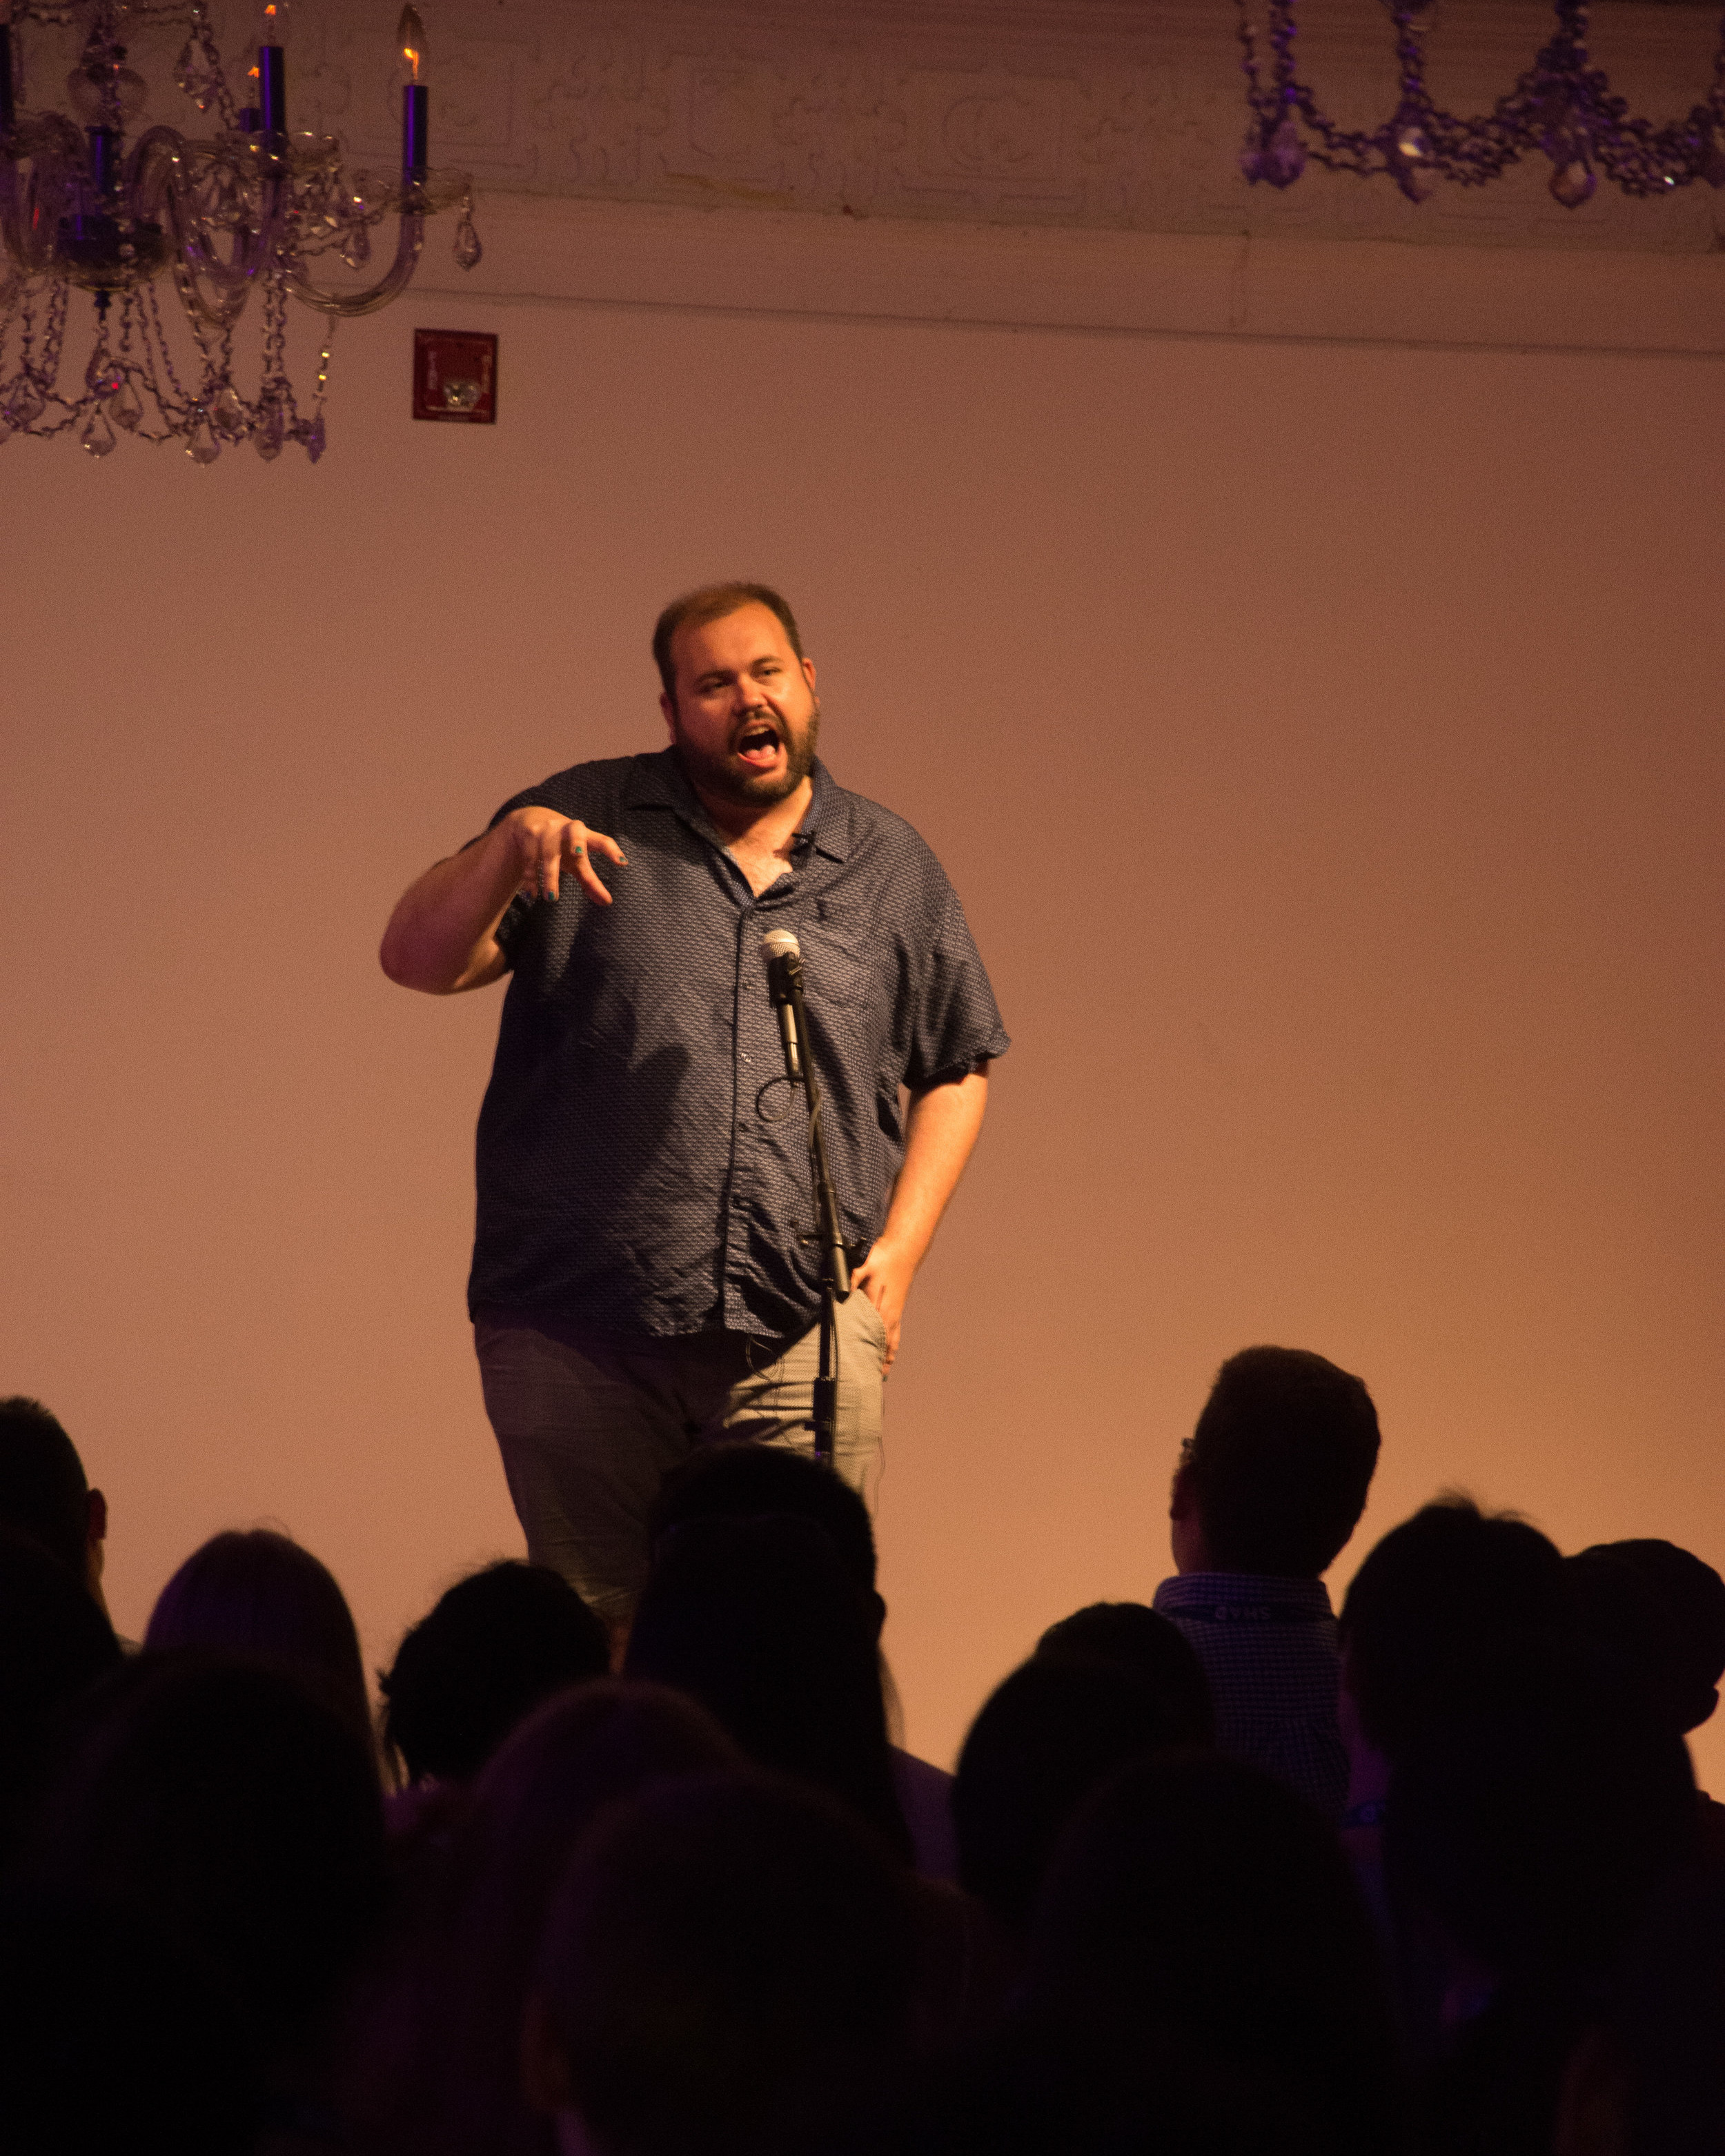 Dan Simpson shares his story with our audience at The 519 in Toronto, ON in July 2018. Photo by Stacey McDonald.